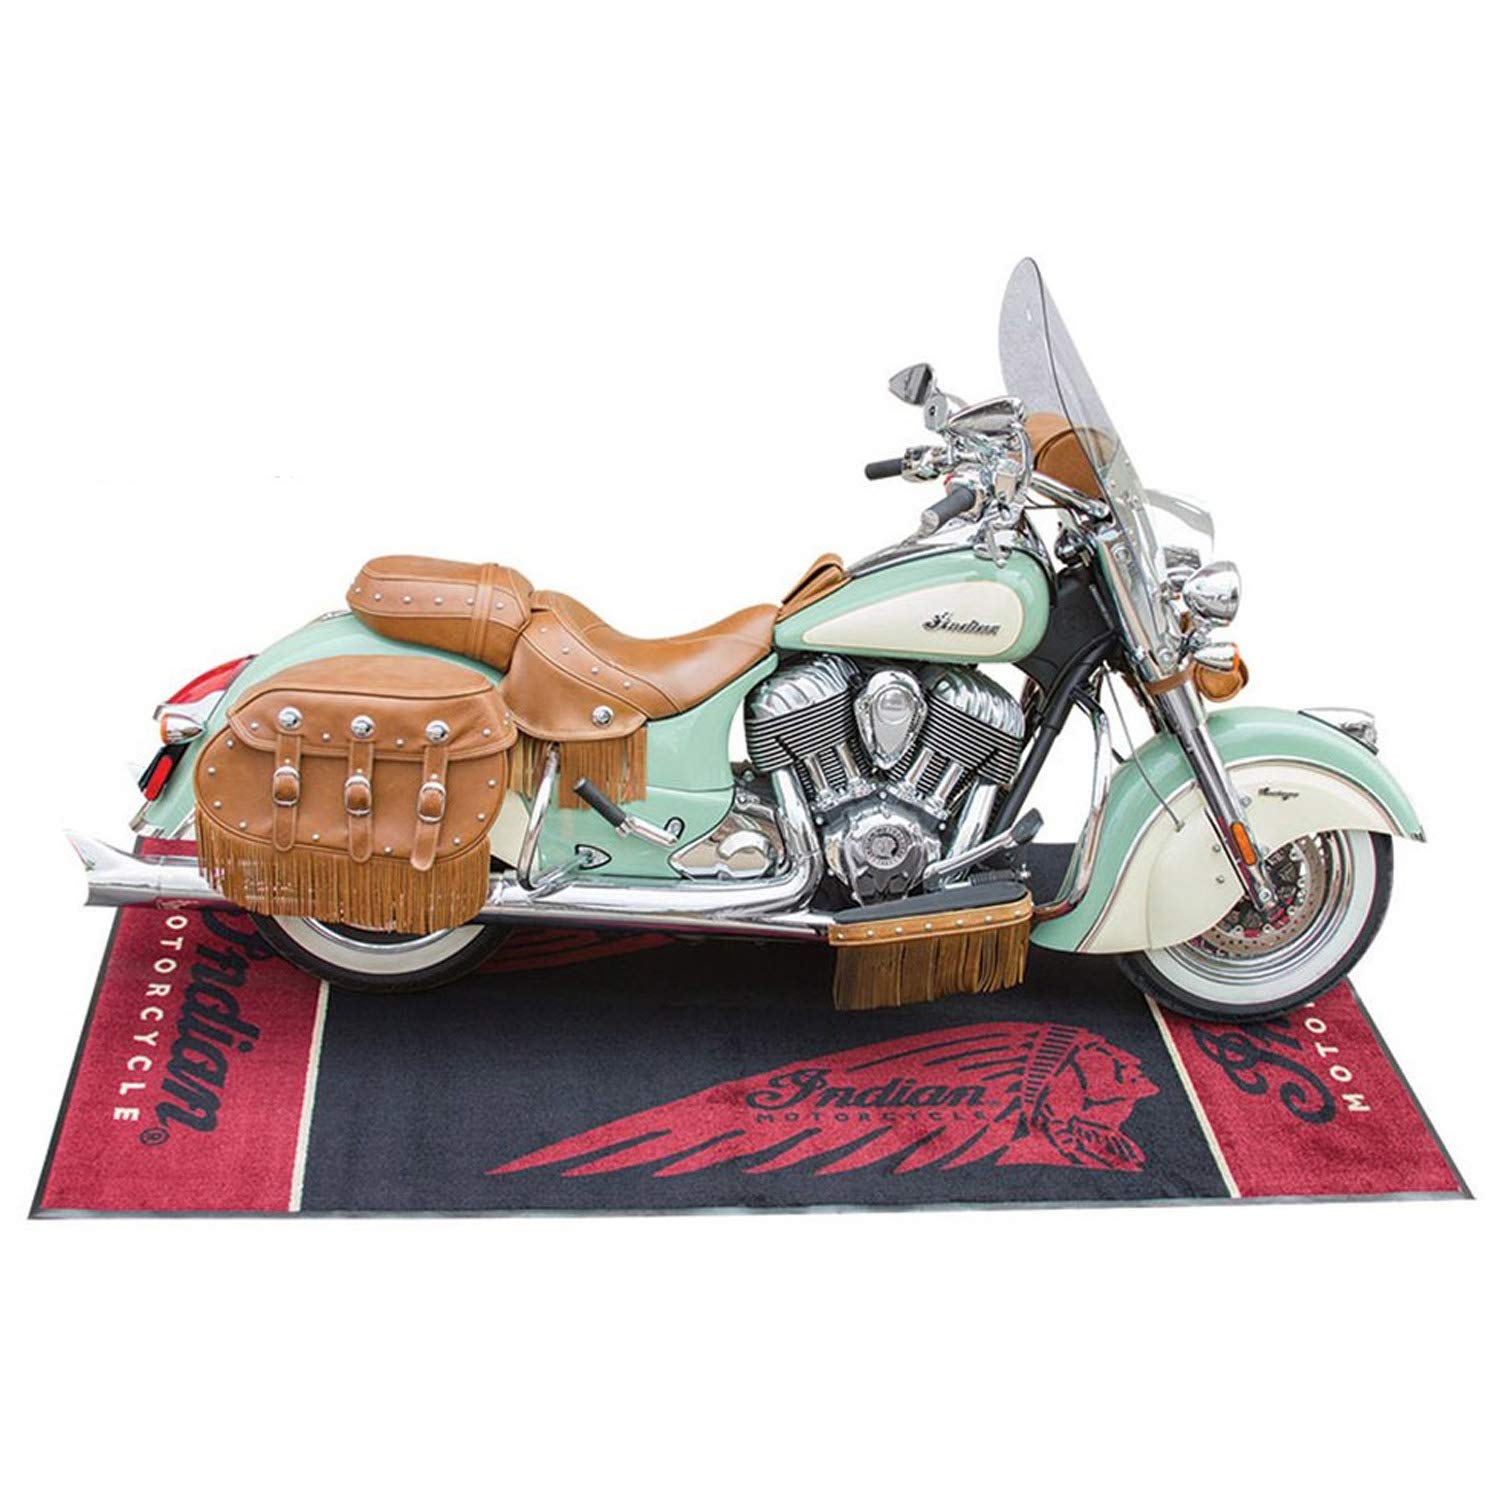 Indian Motorcycle Rug 4.5 x 8.5 by Indian Motorcycle (Image #2)